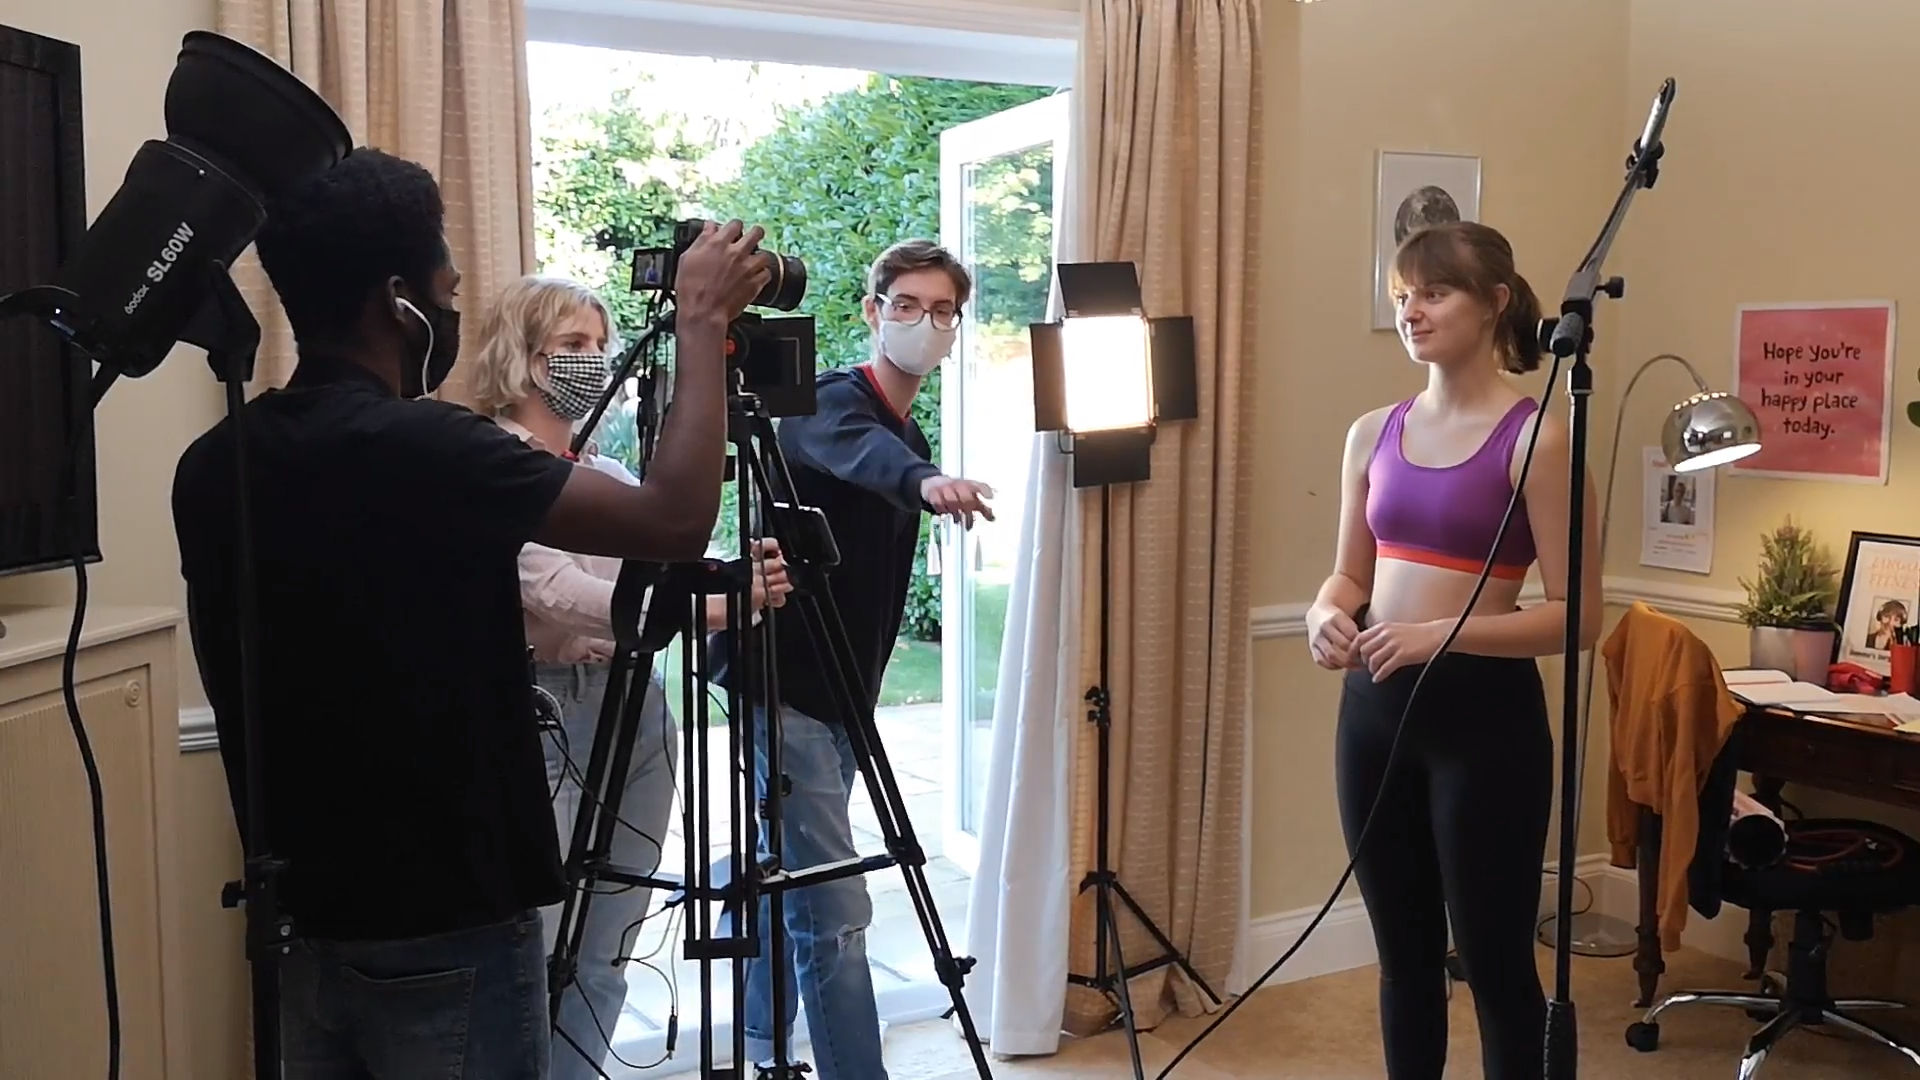 Behind the scenes photo from comedy short film Jargon Fitness